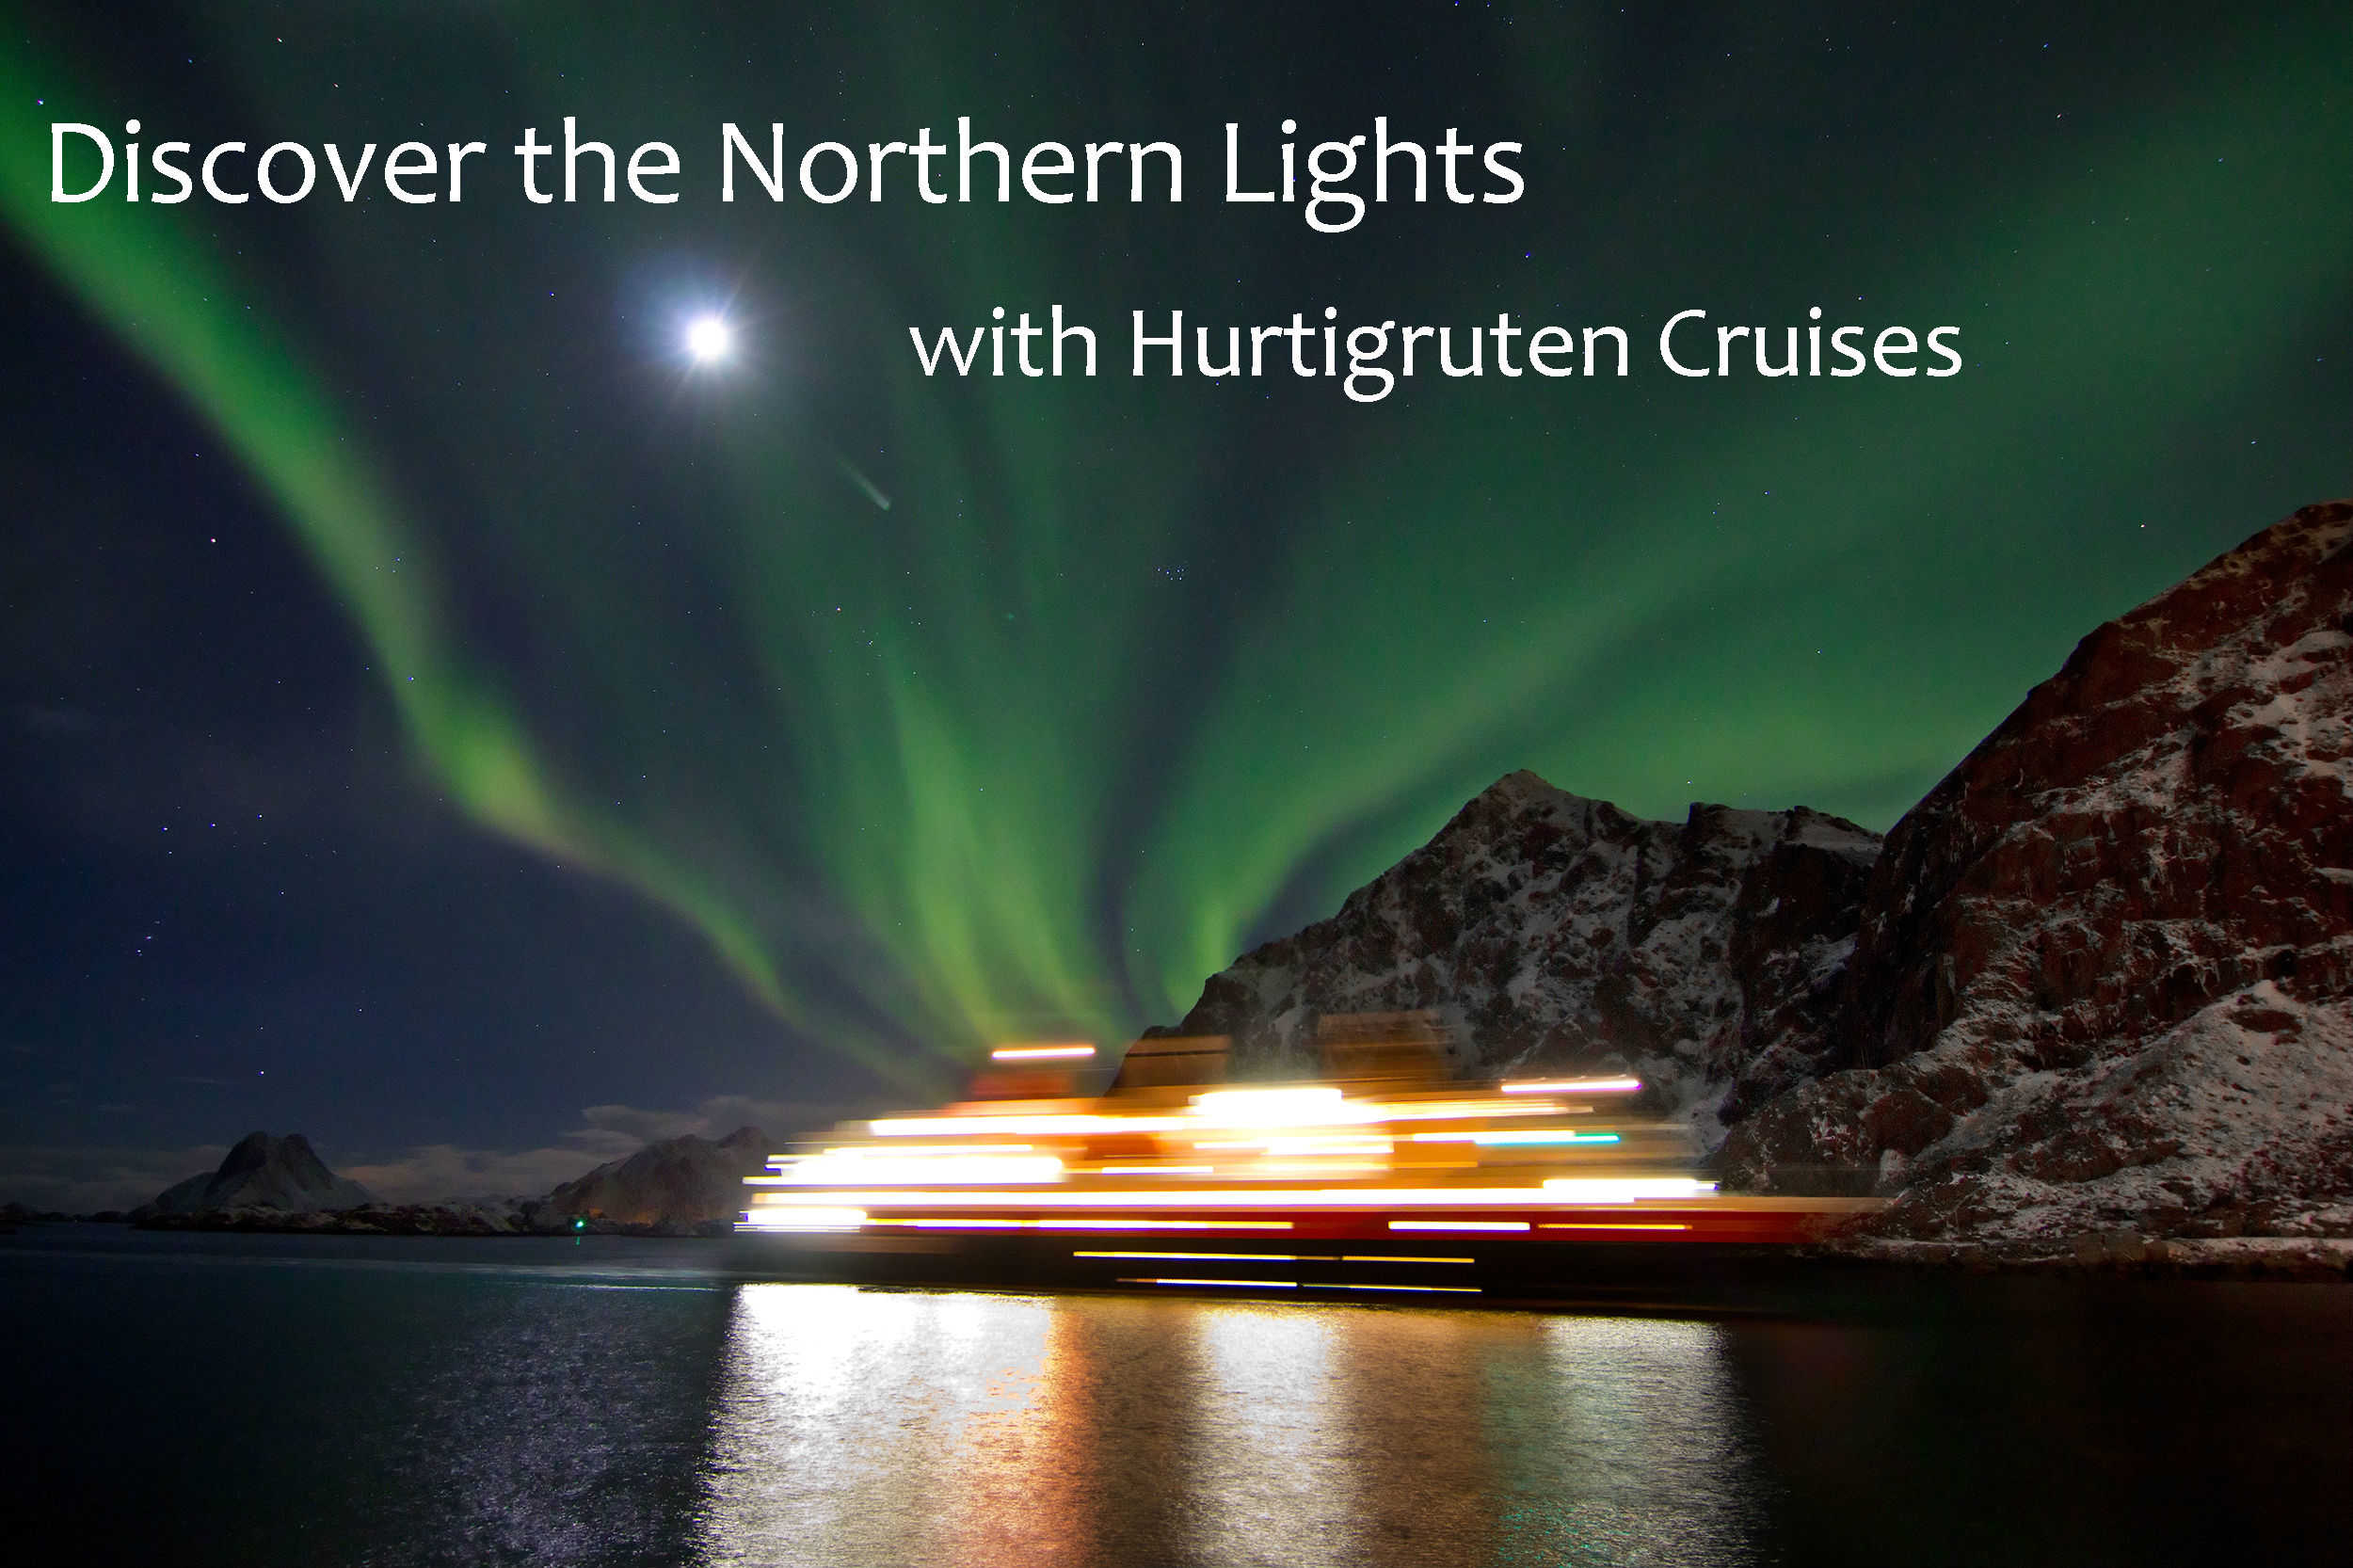 The_nothern_lights_ship